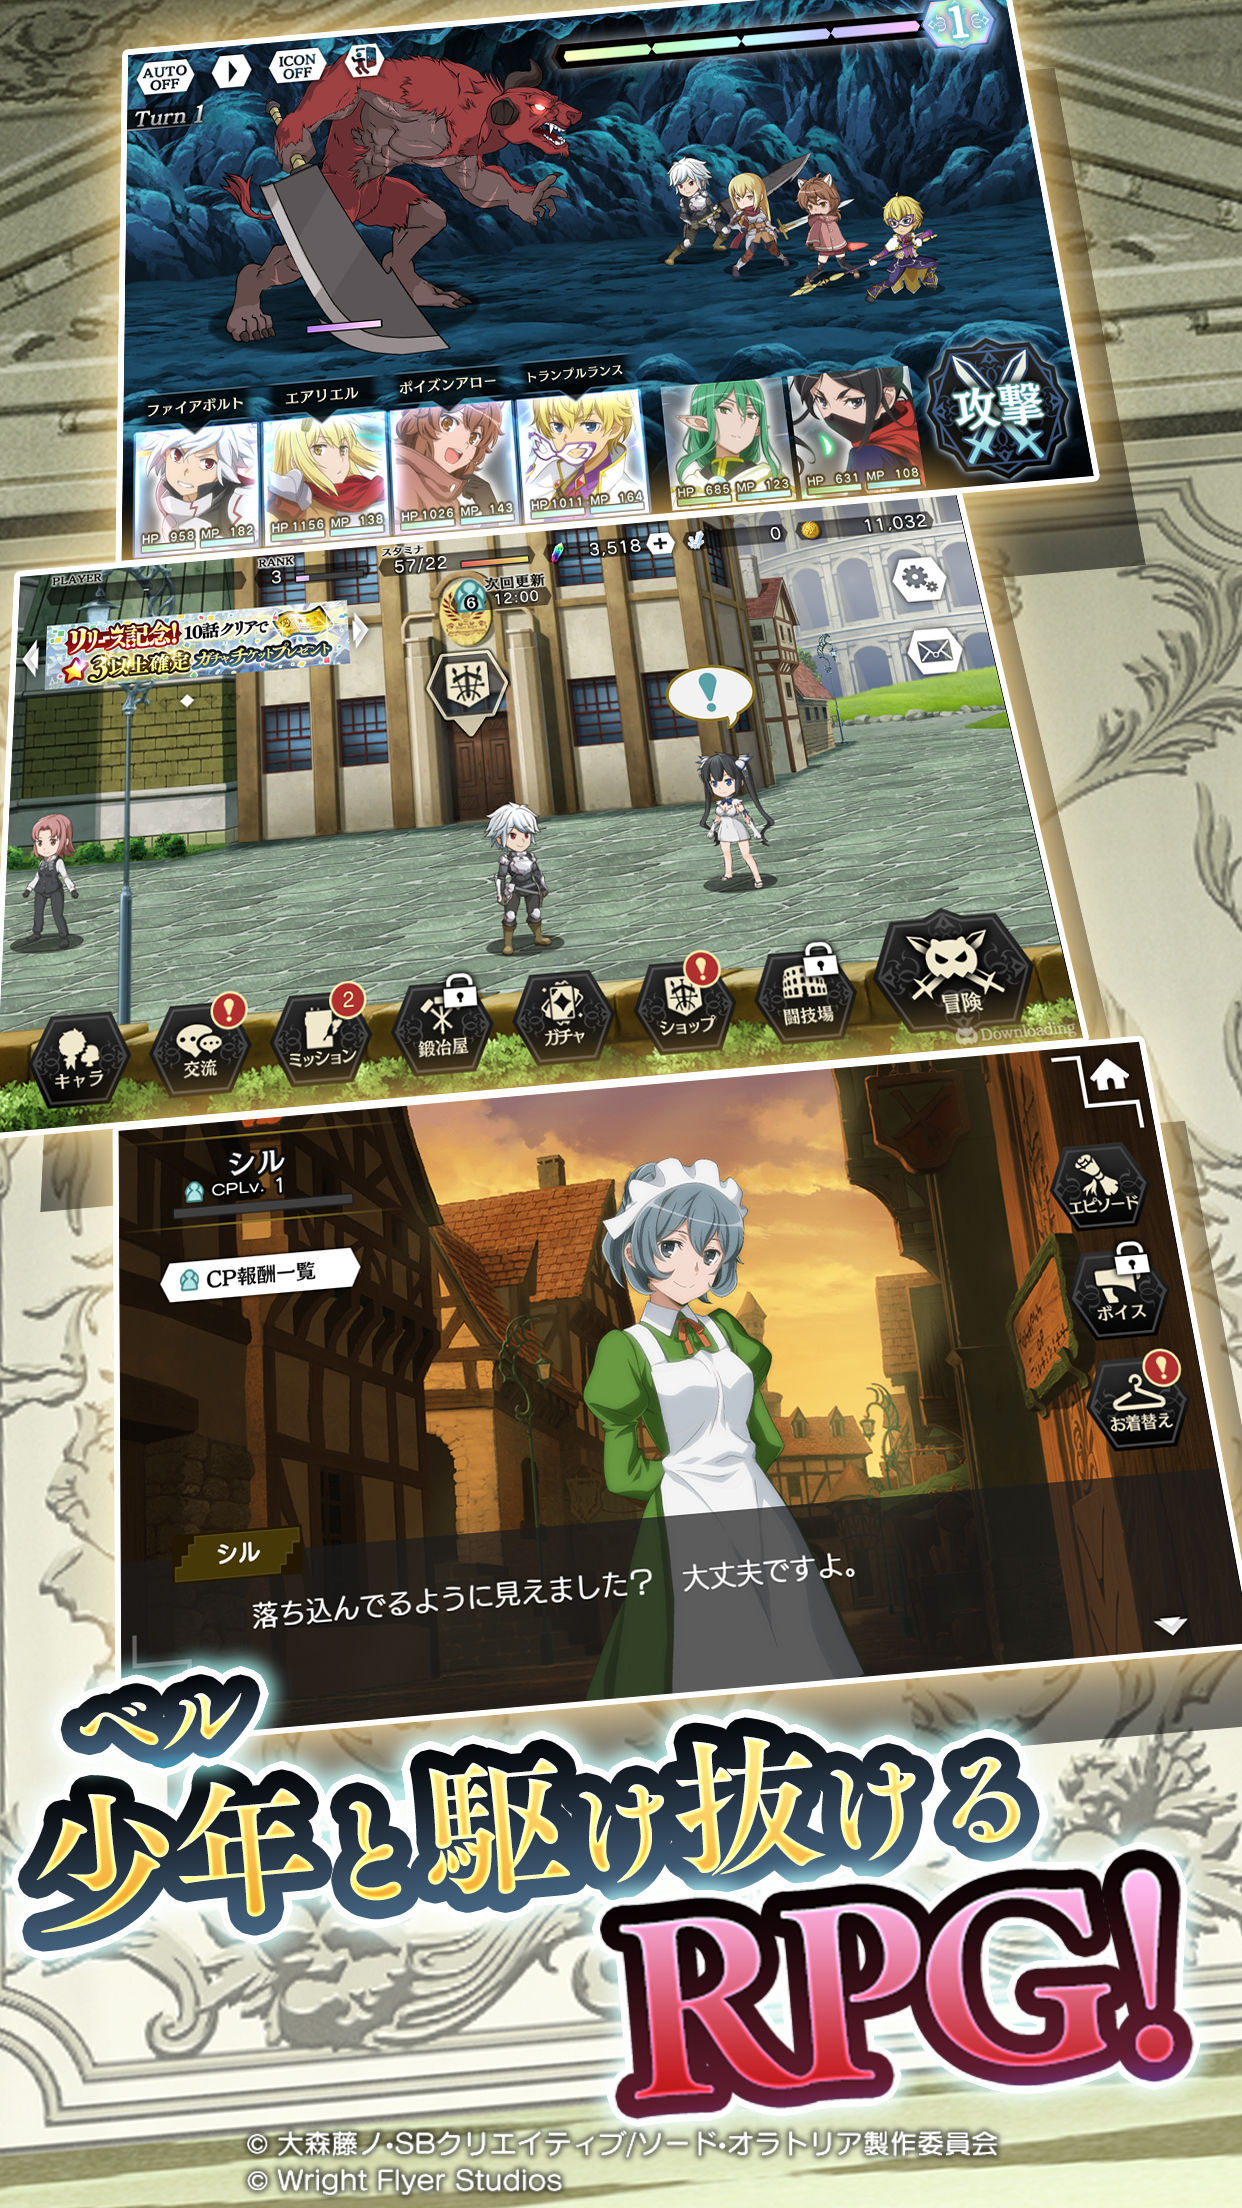 Crunchyroll localizing/publishing Japanese mobile games, GREE's